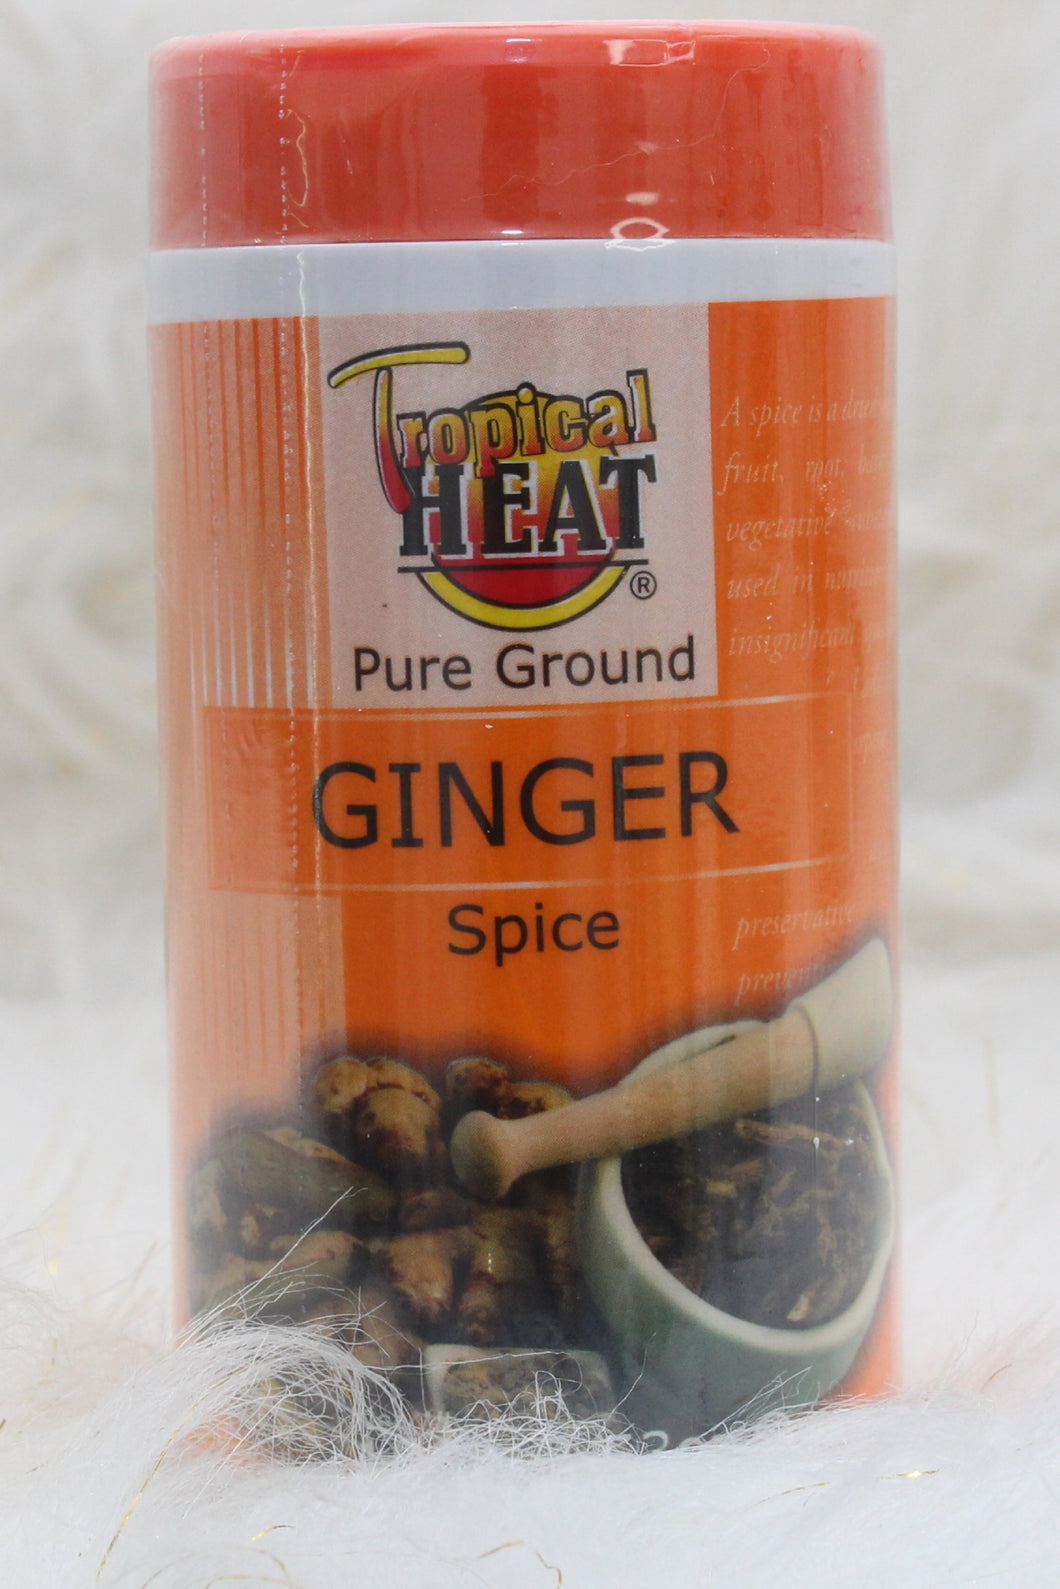 TROPICAL HEAT| Ginger Spice